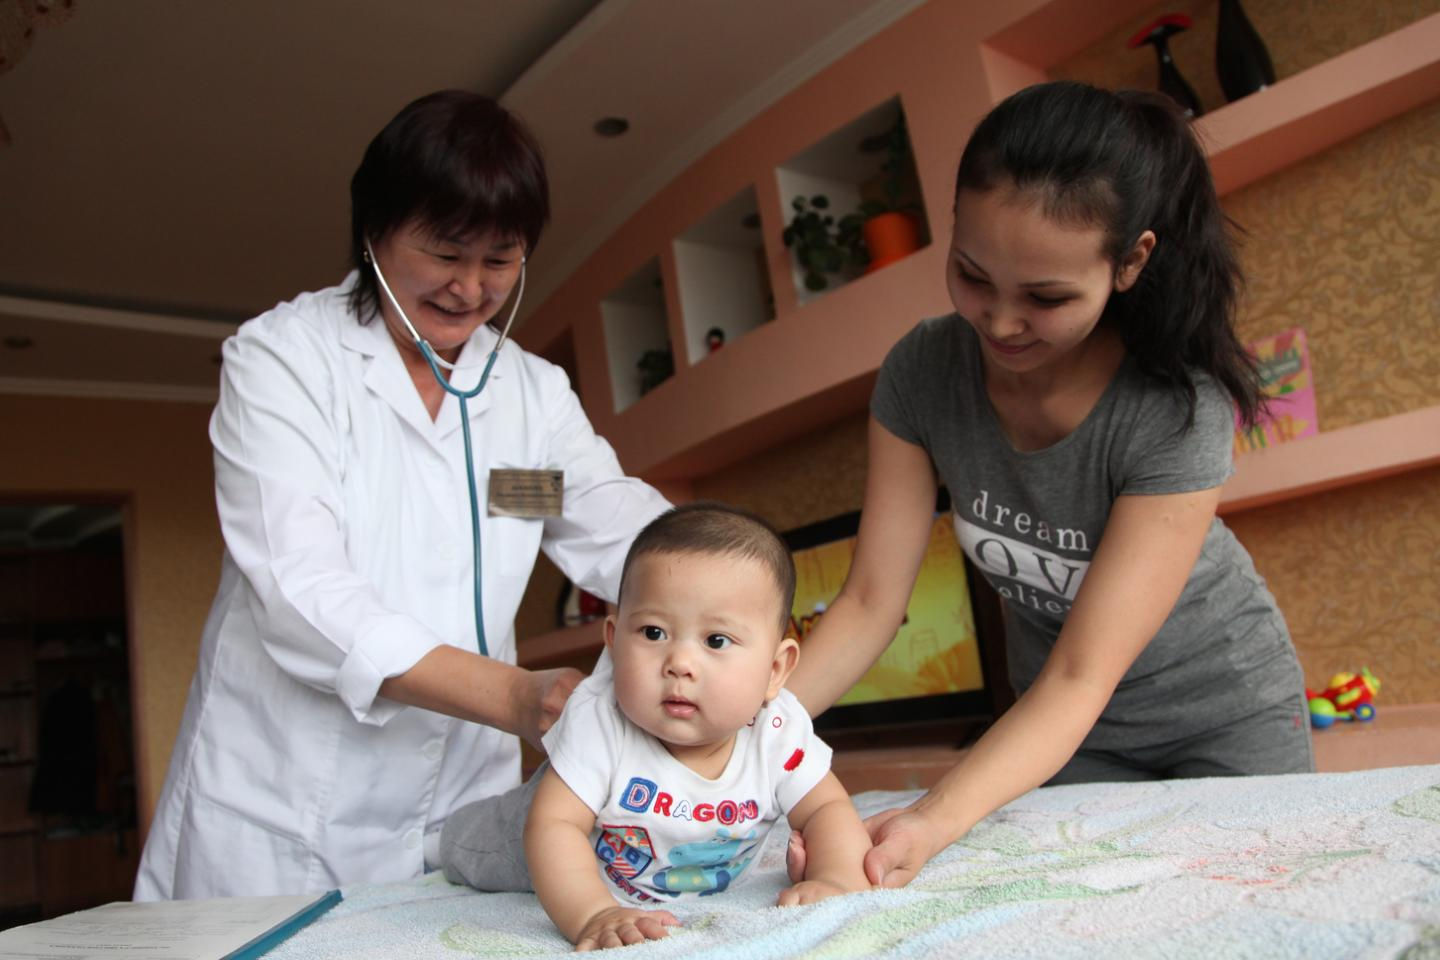 Patronage nurses visit families with infants from 0 to 1 year old in Oskemen city, East Kazakhstan Oblast, Kazakhstan.